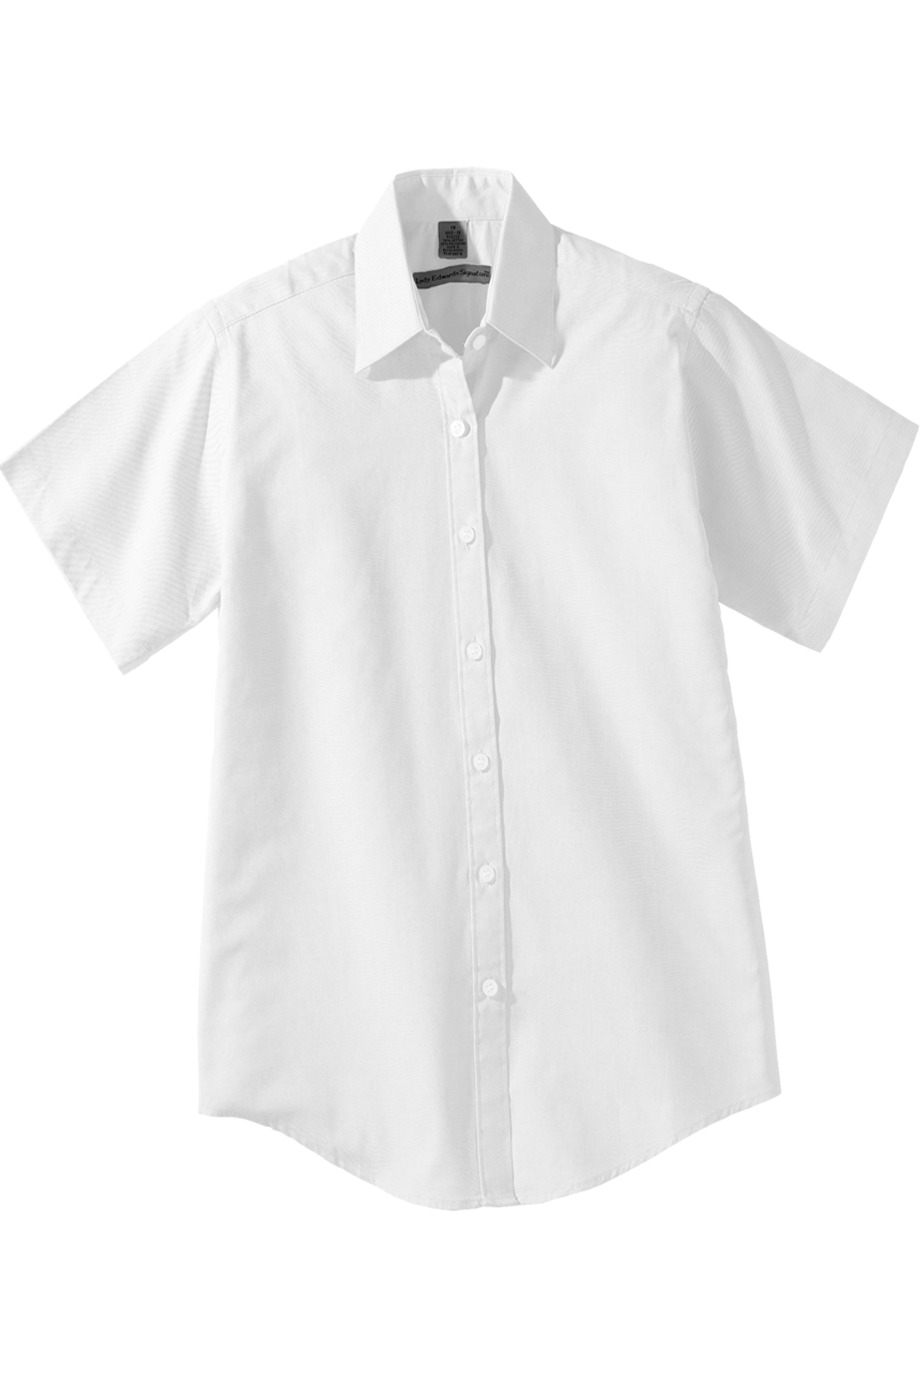 Edwards Garment 5925 - Women's Short Sleeve Pinpoint ...